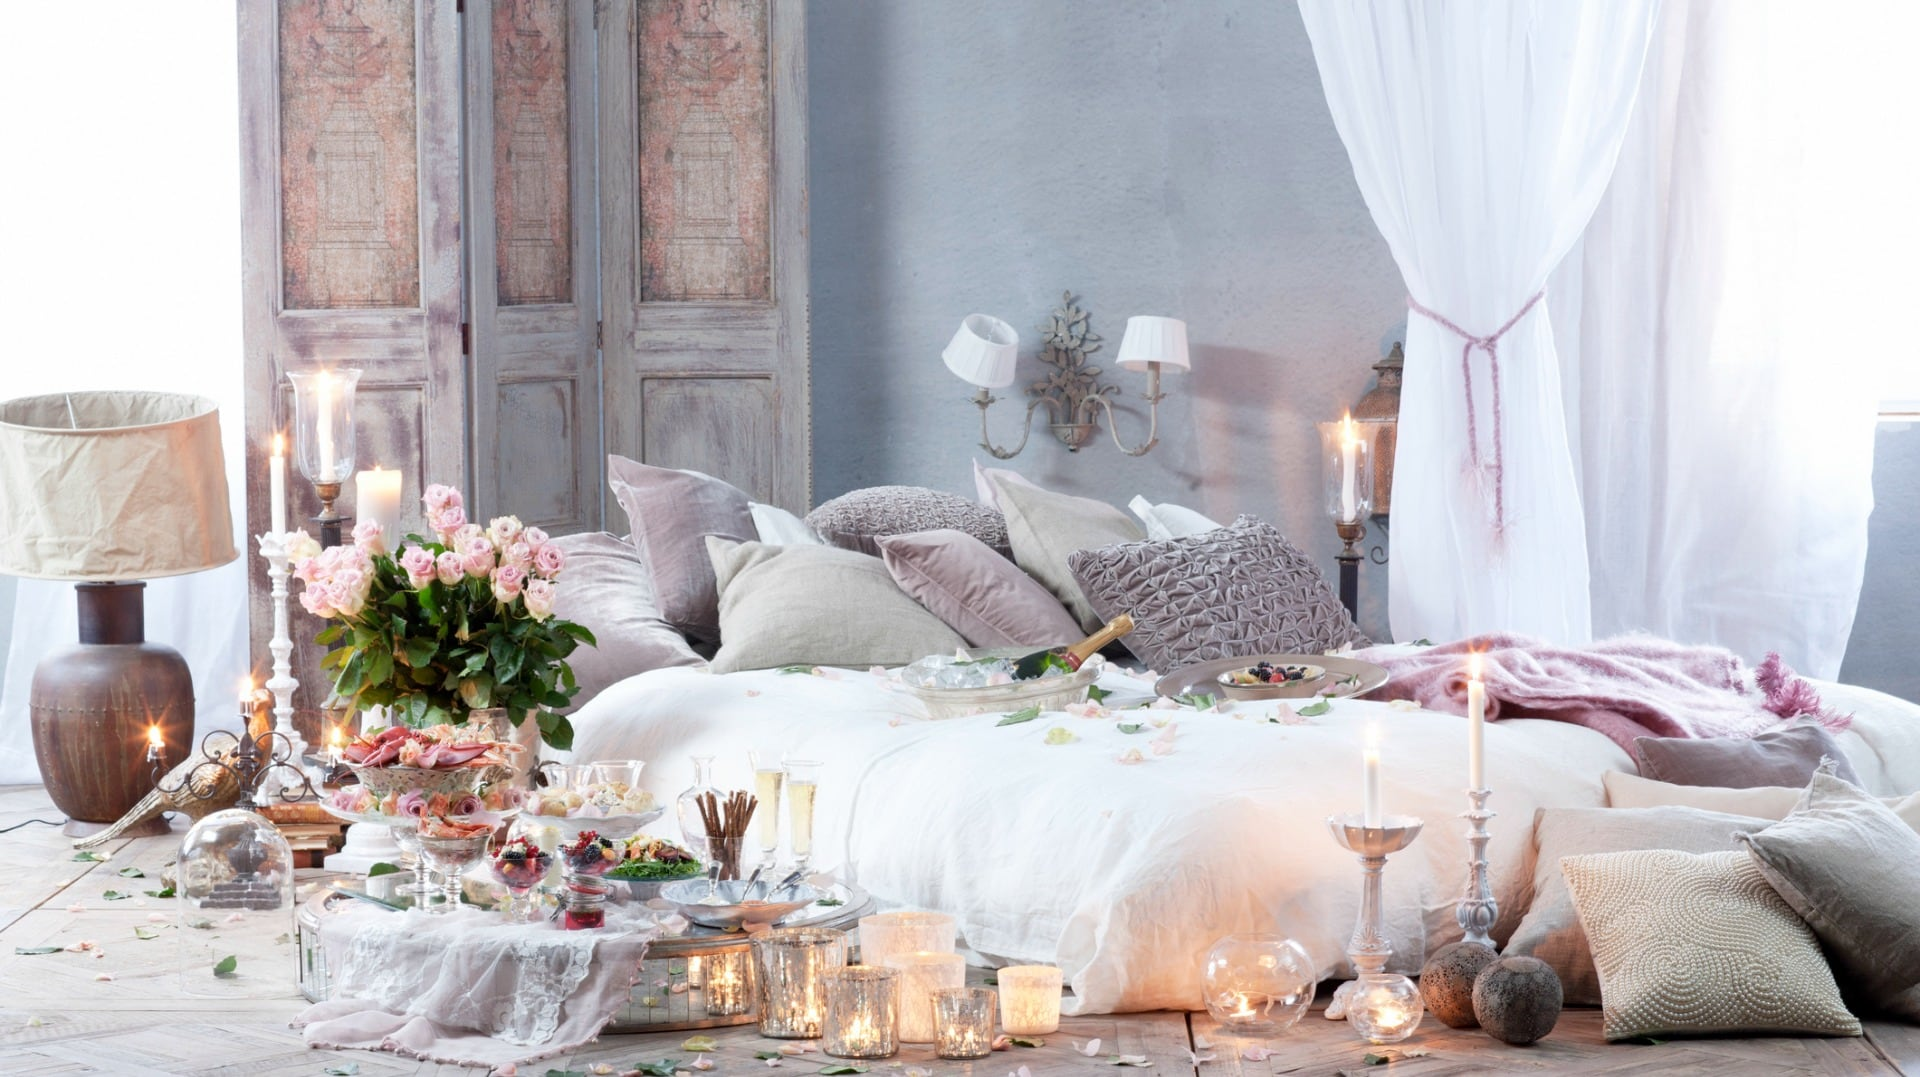 Valentines Day Bedroom 8 Romantic Bedroom Ideas Just in Time for Valentineu0027s Day